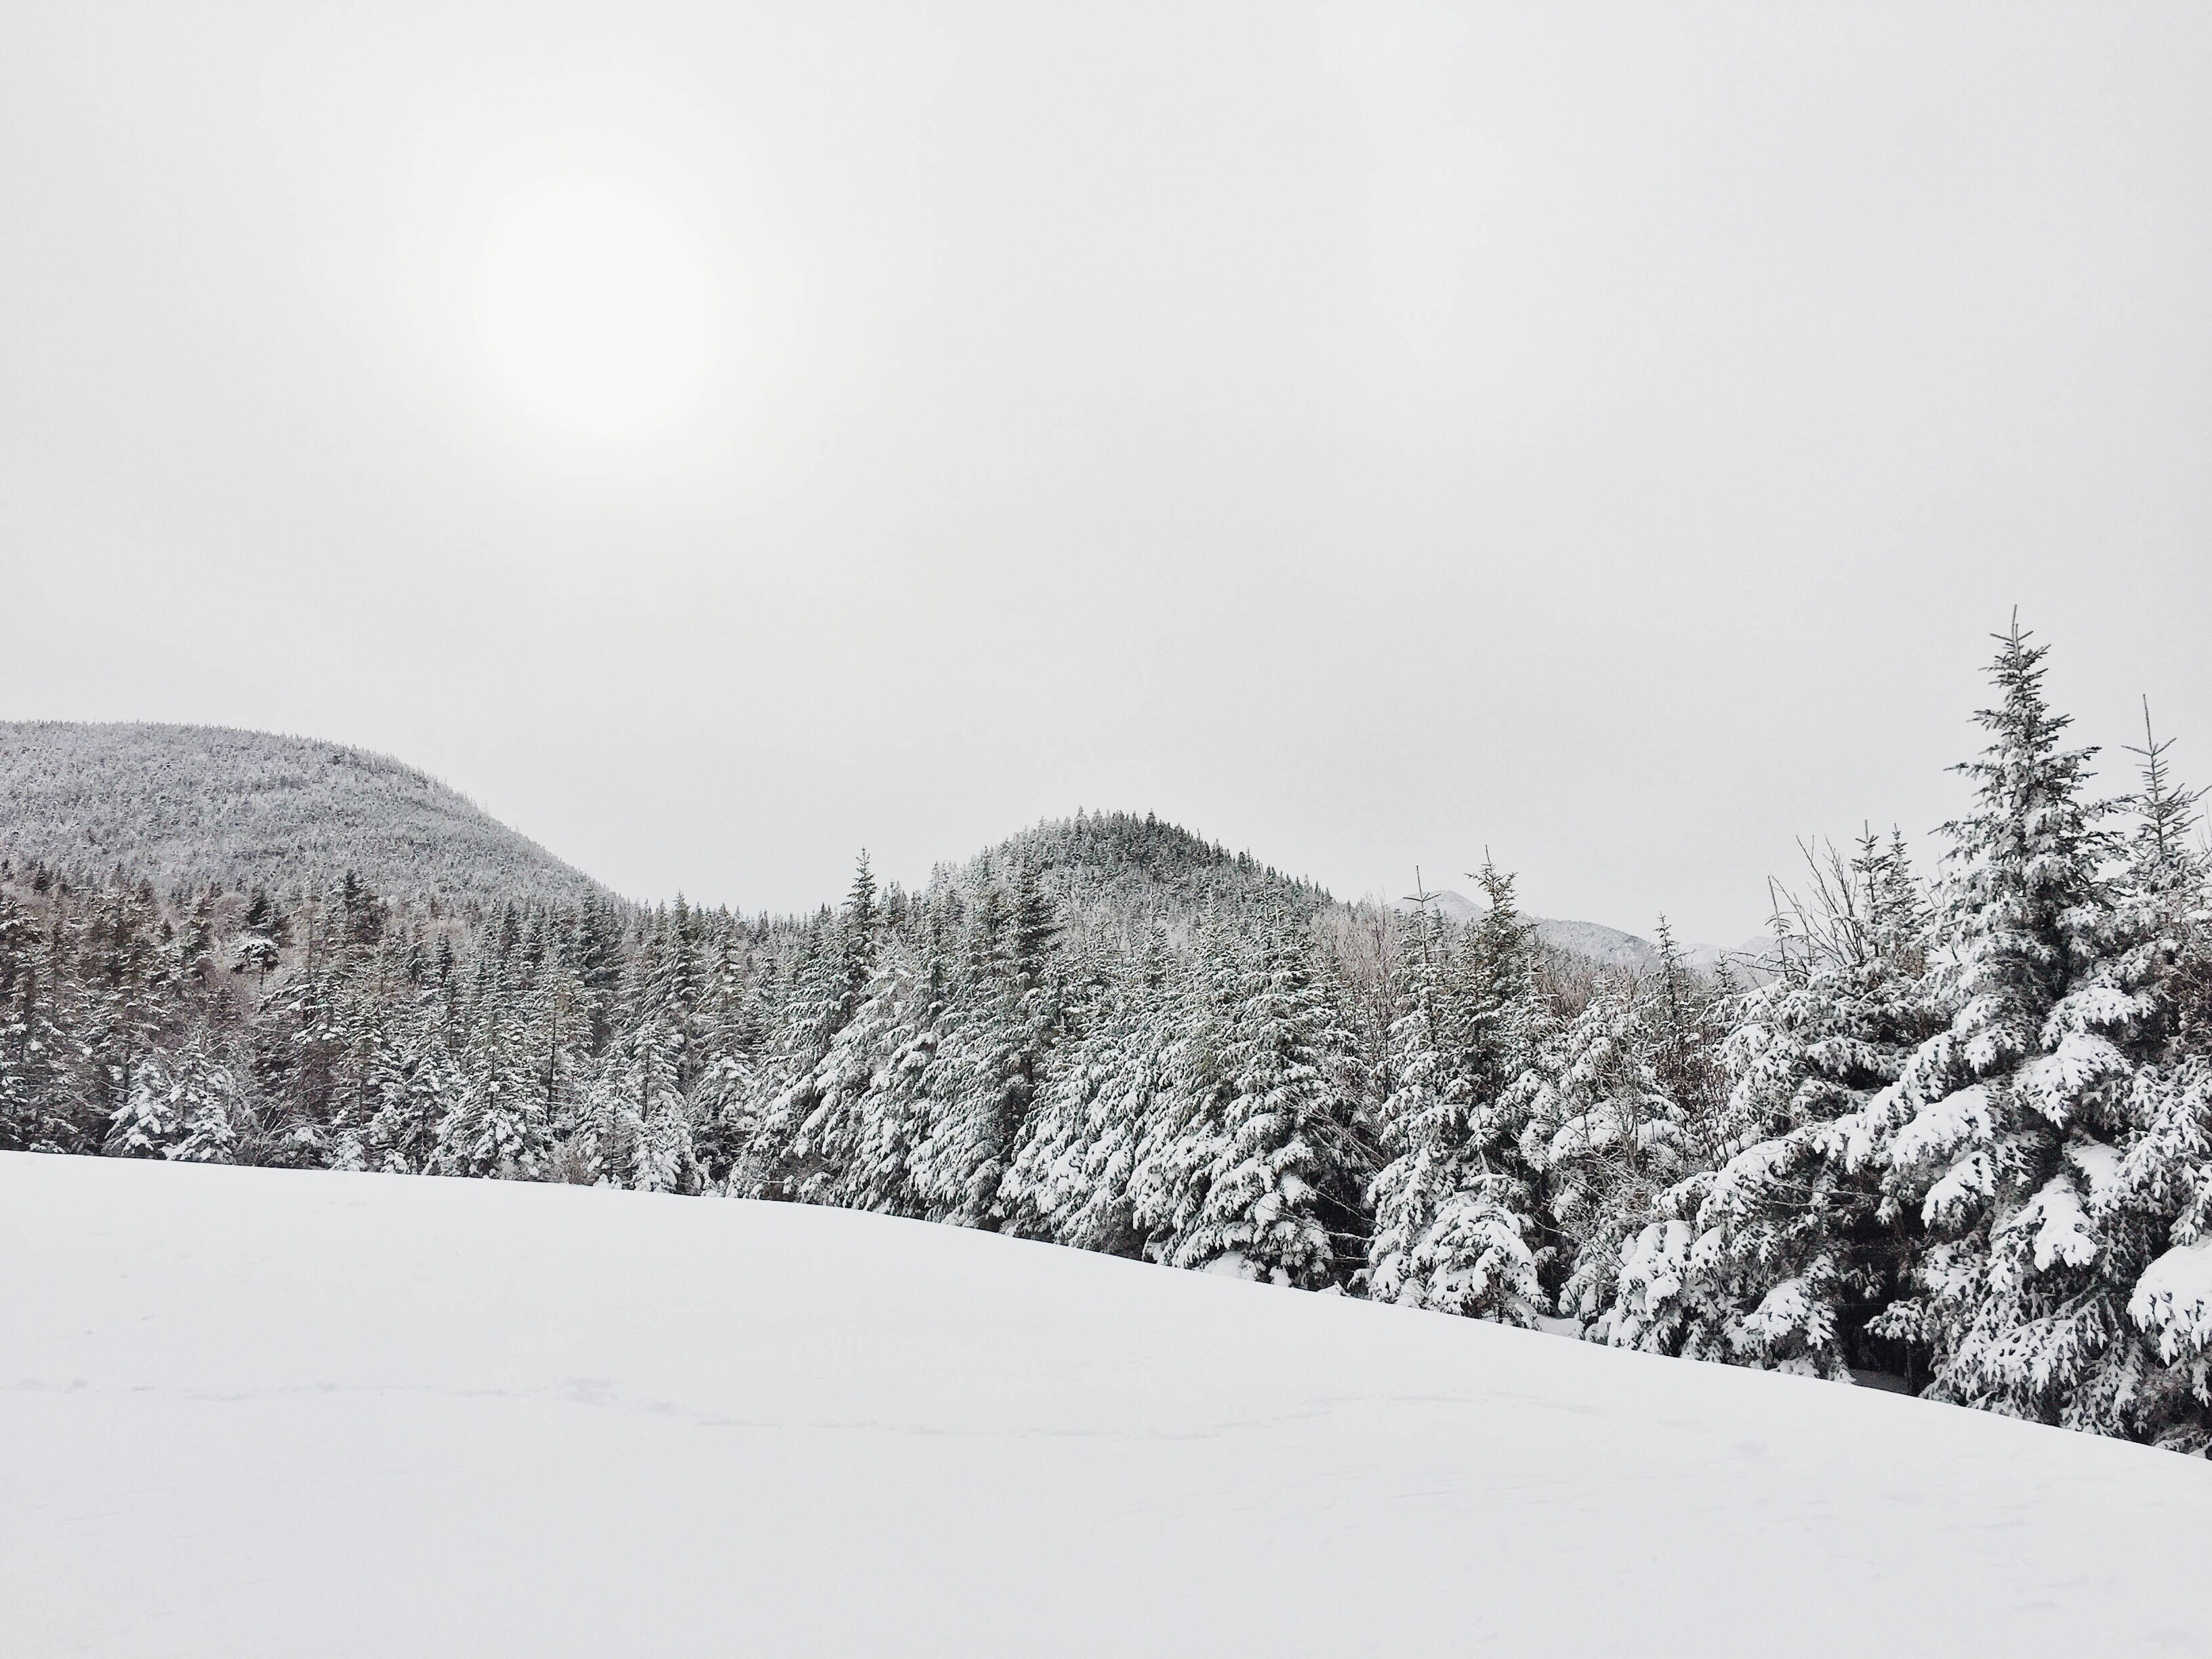 Snow covered hill and forest in gray scale.